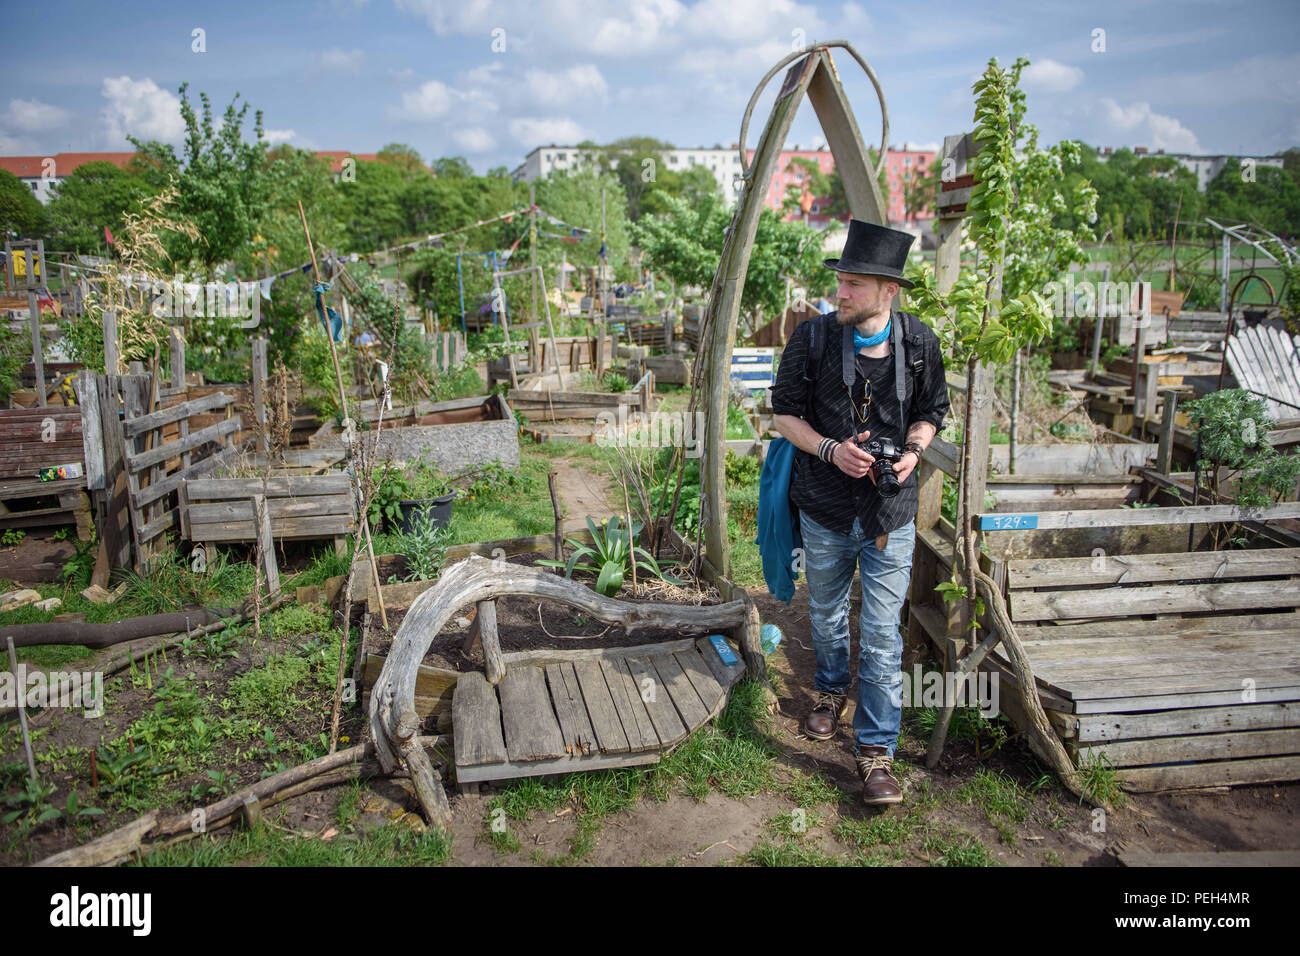 Berlin, Germany. 23rd Apr, 2018. Juha Järvinen is part of a social experiment trying out the concept of basic income. Here he poses in the communal gardens on the Tempelhofer Feld. Credit: Gregor Fischer/dpa/Alamy Live News - Stock Image